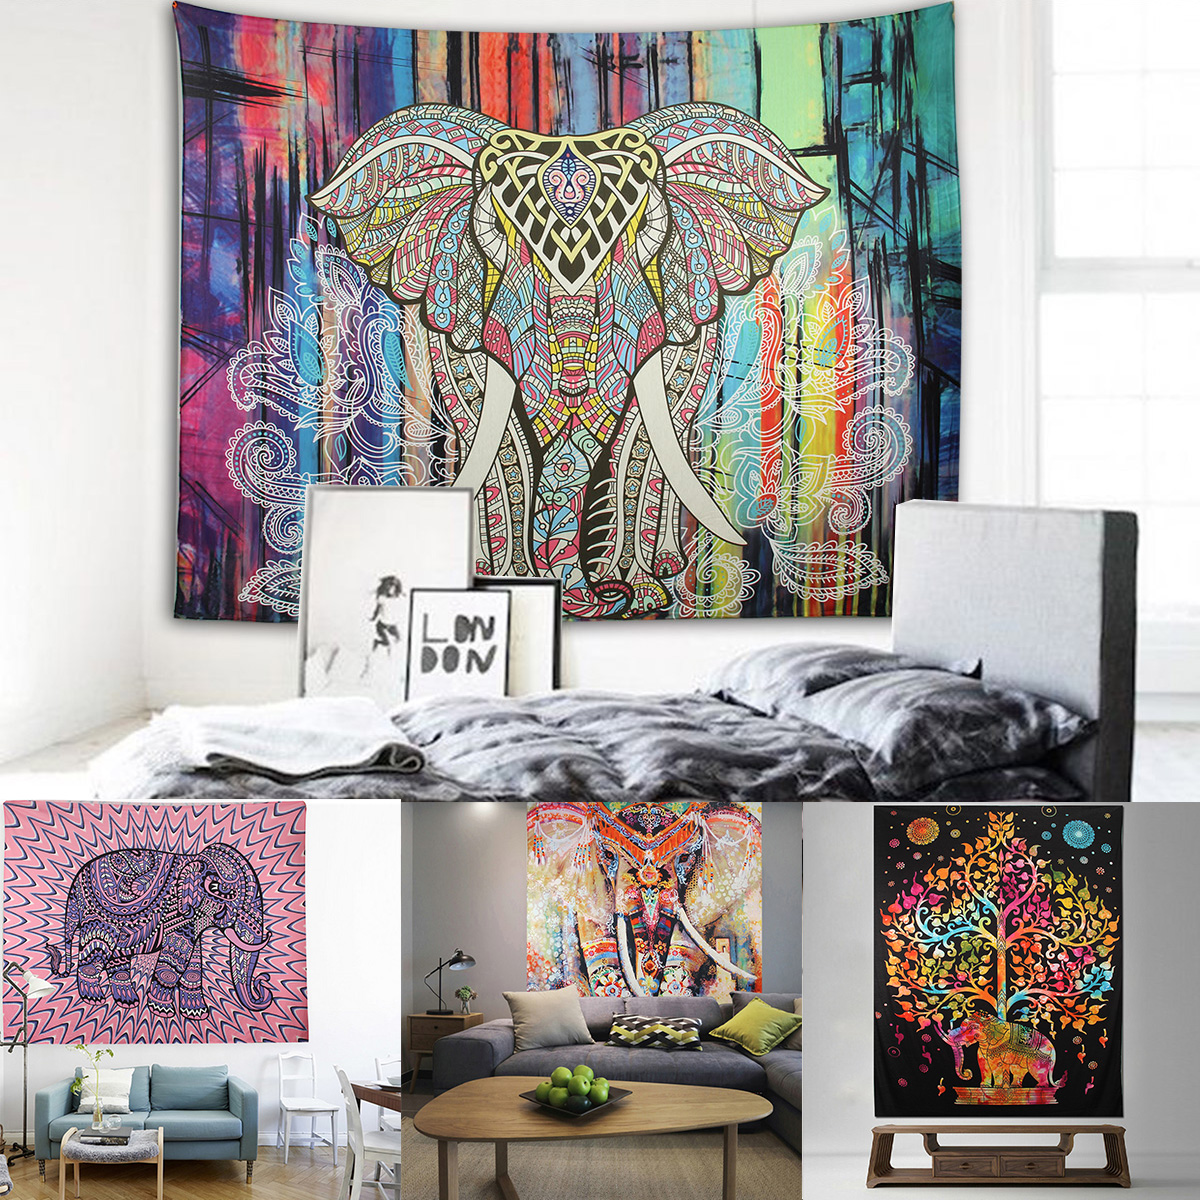 Elephant Mandala Tapestry Throw Towel Hippie Tapestry Floral Printed Home Decor Wall Tapestries Bedspread 210*150CM 4